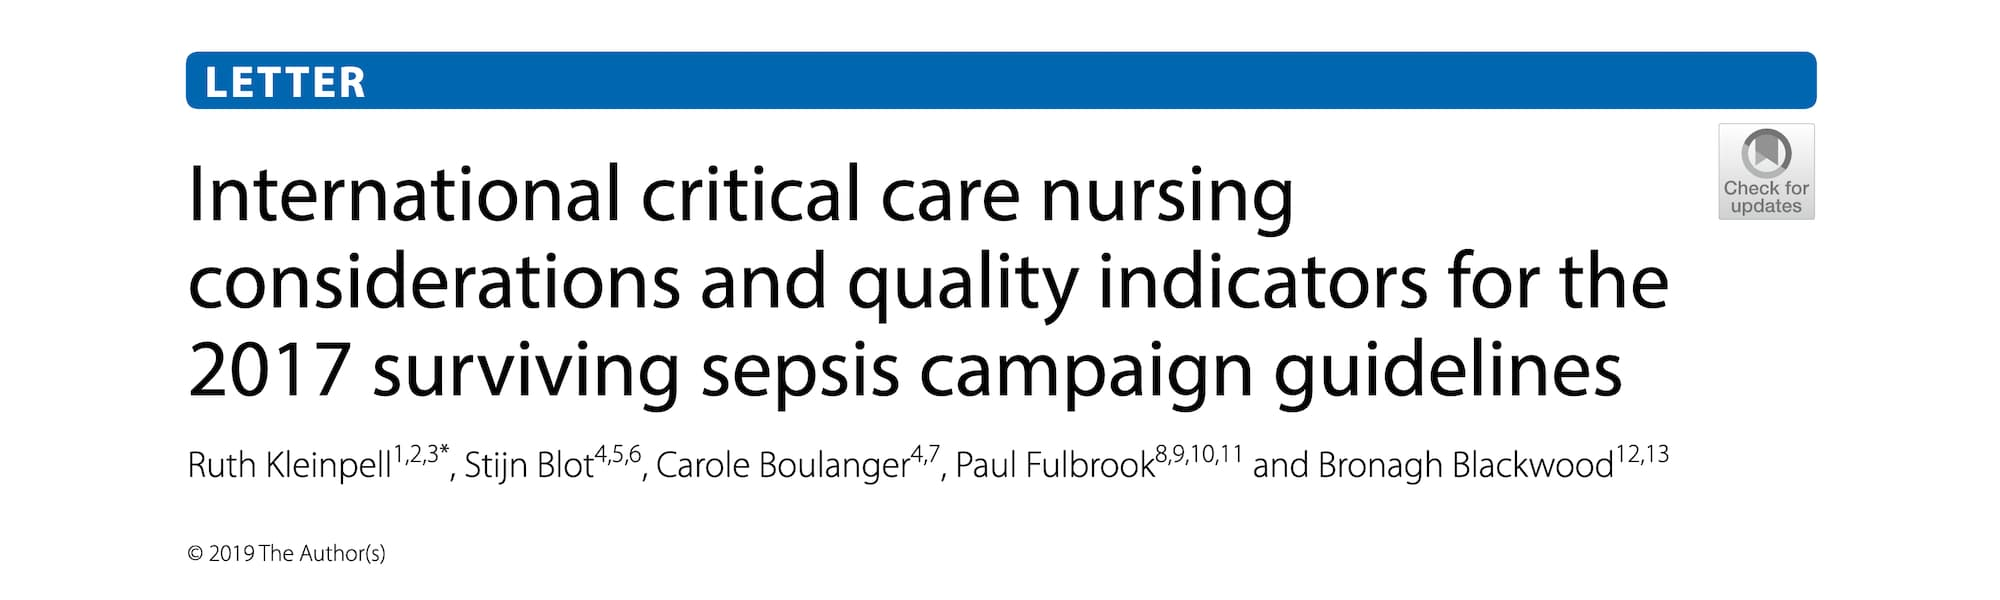 International Critical Care Nursing Considerations and Quality Indicators for the 2017 Surviving Sepsis Campaign Guidelines Banner.jpg